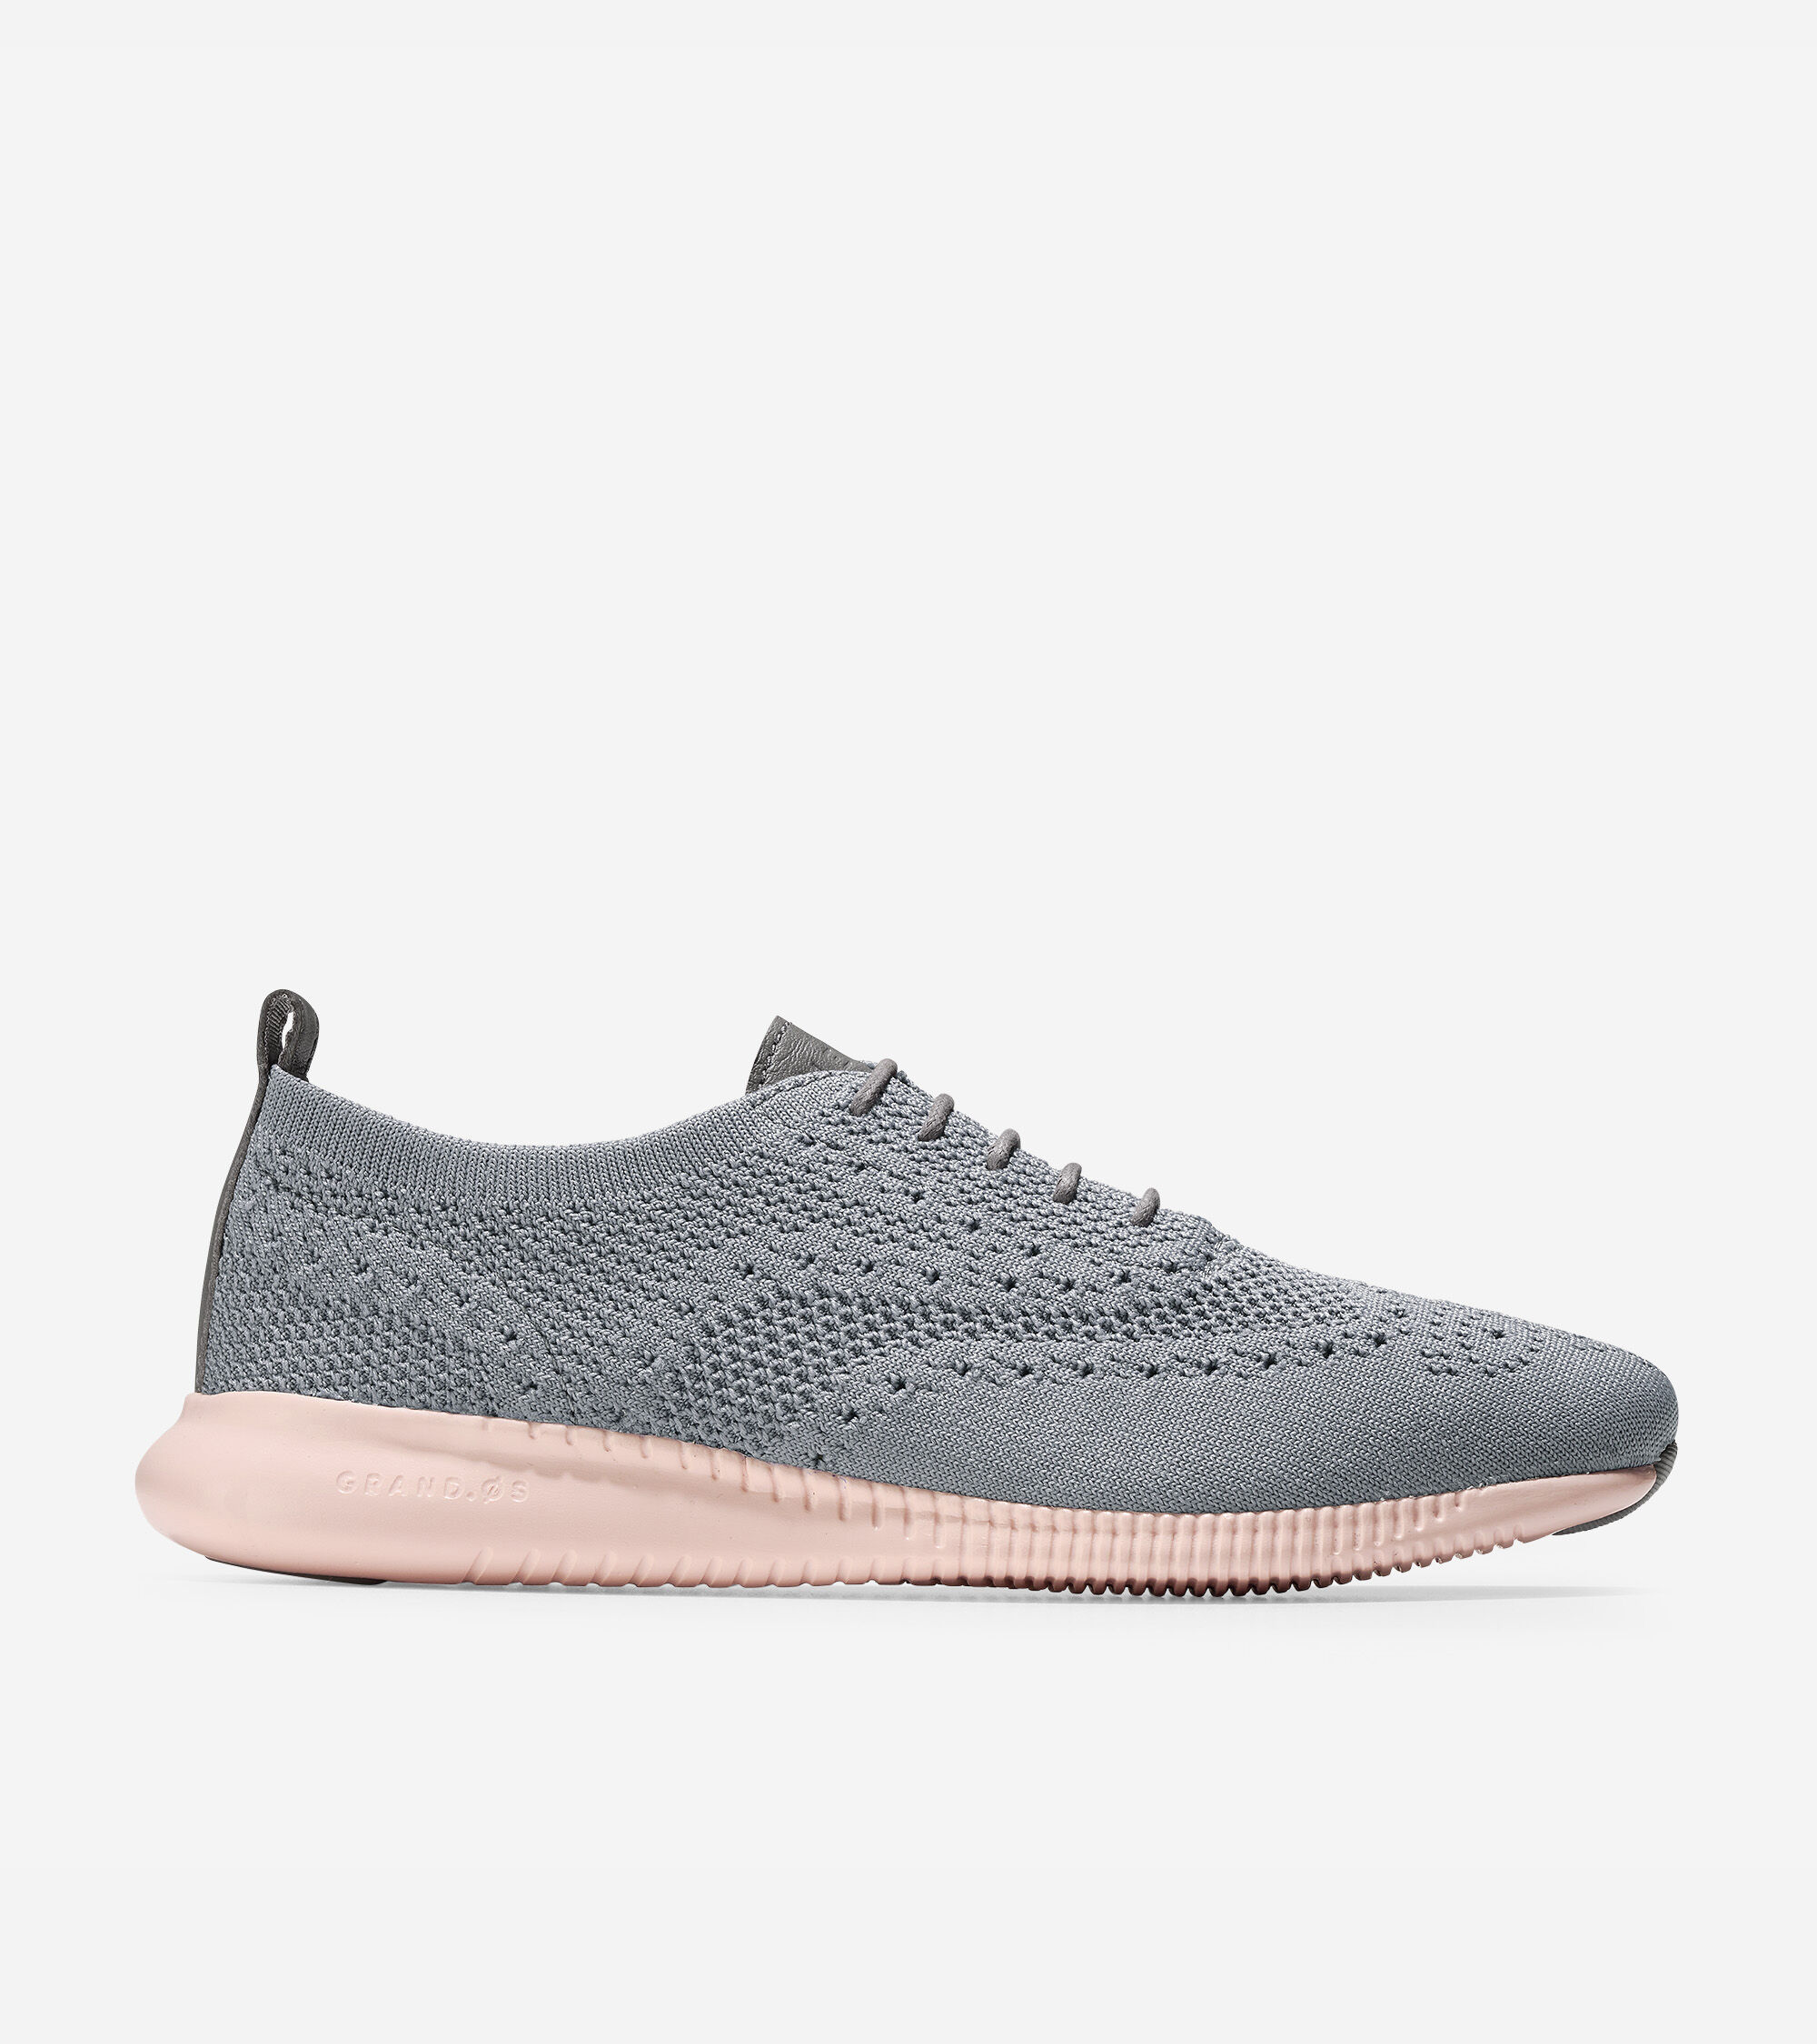 Women's Shoes On Sale | Boots, Sneakers